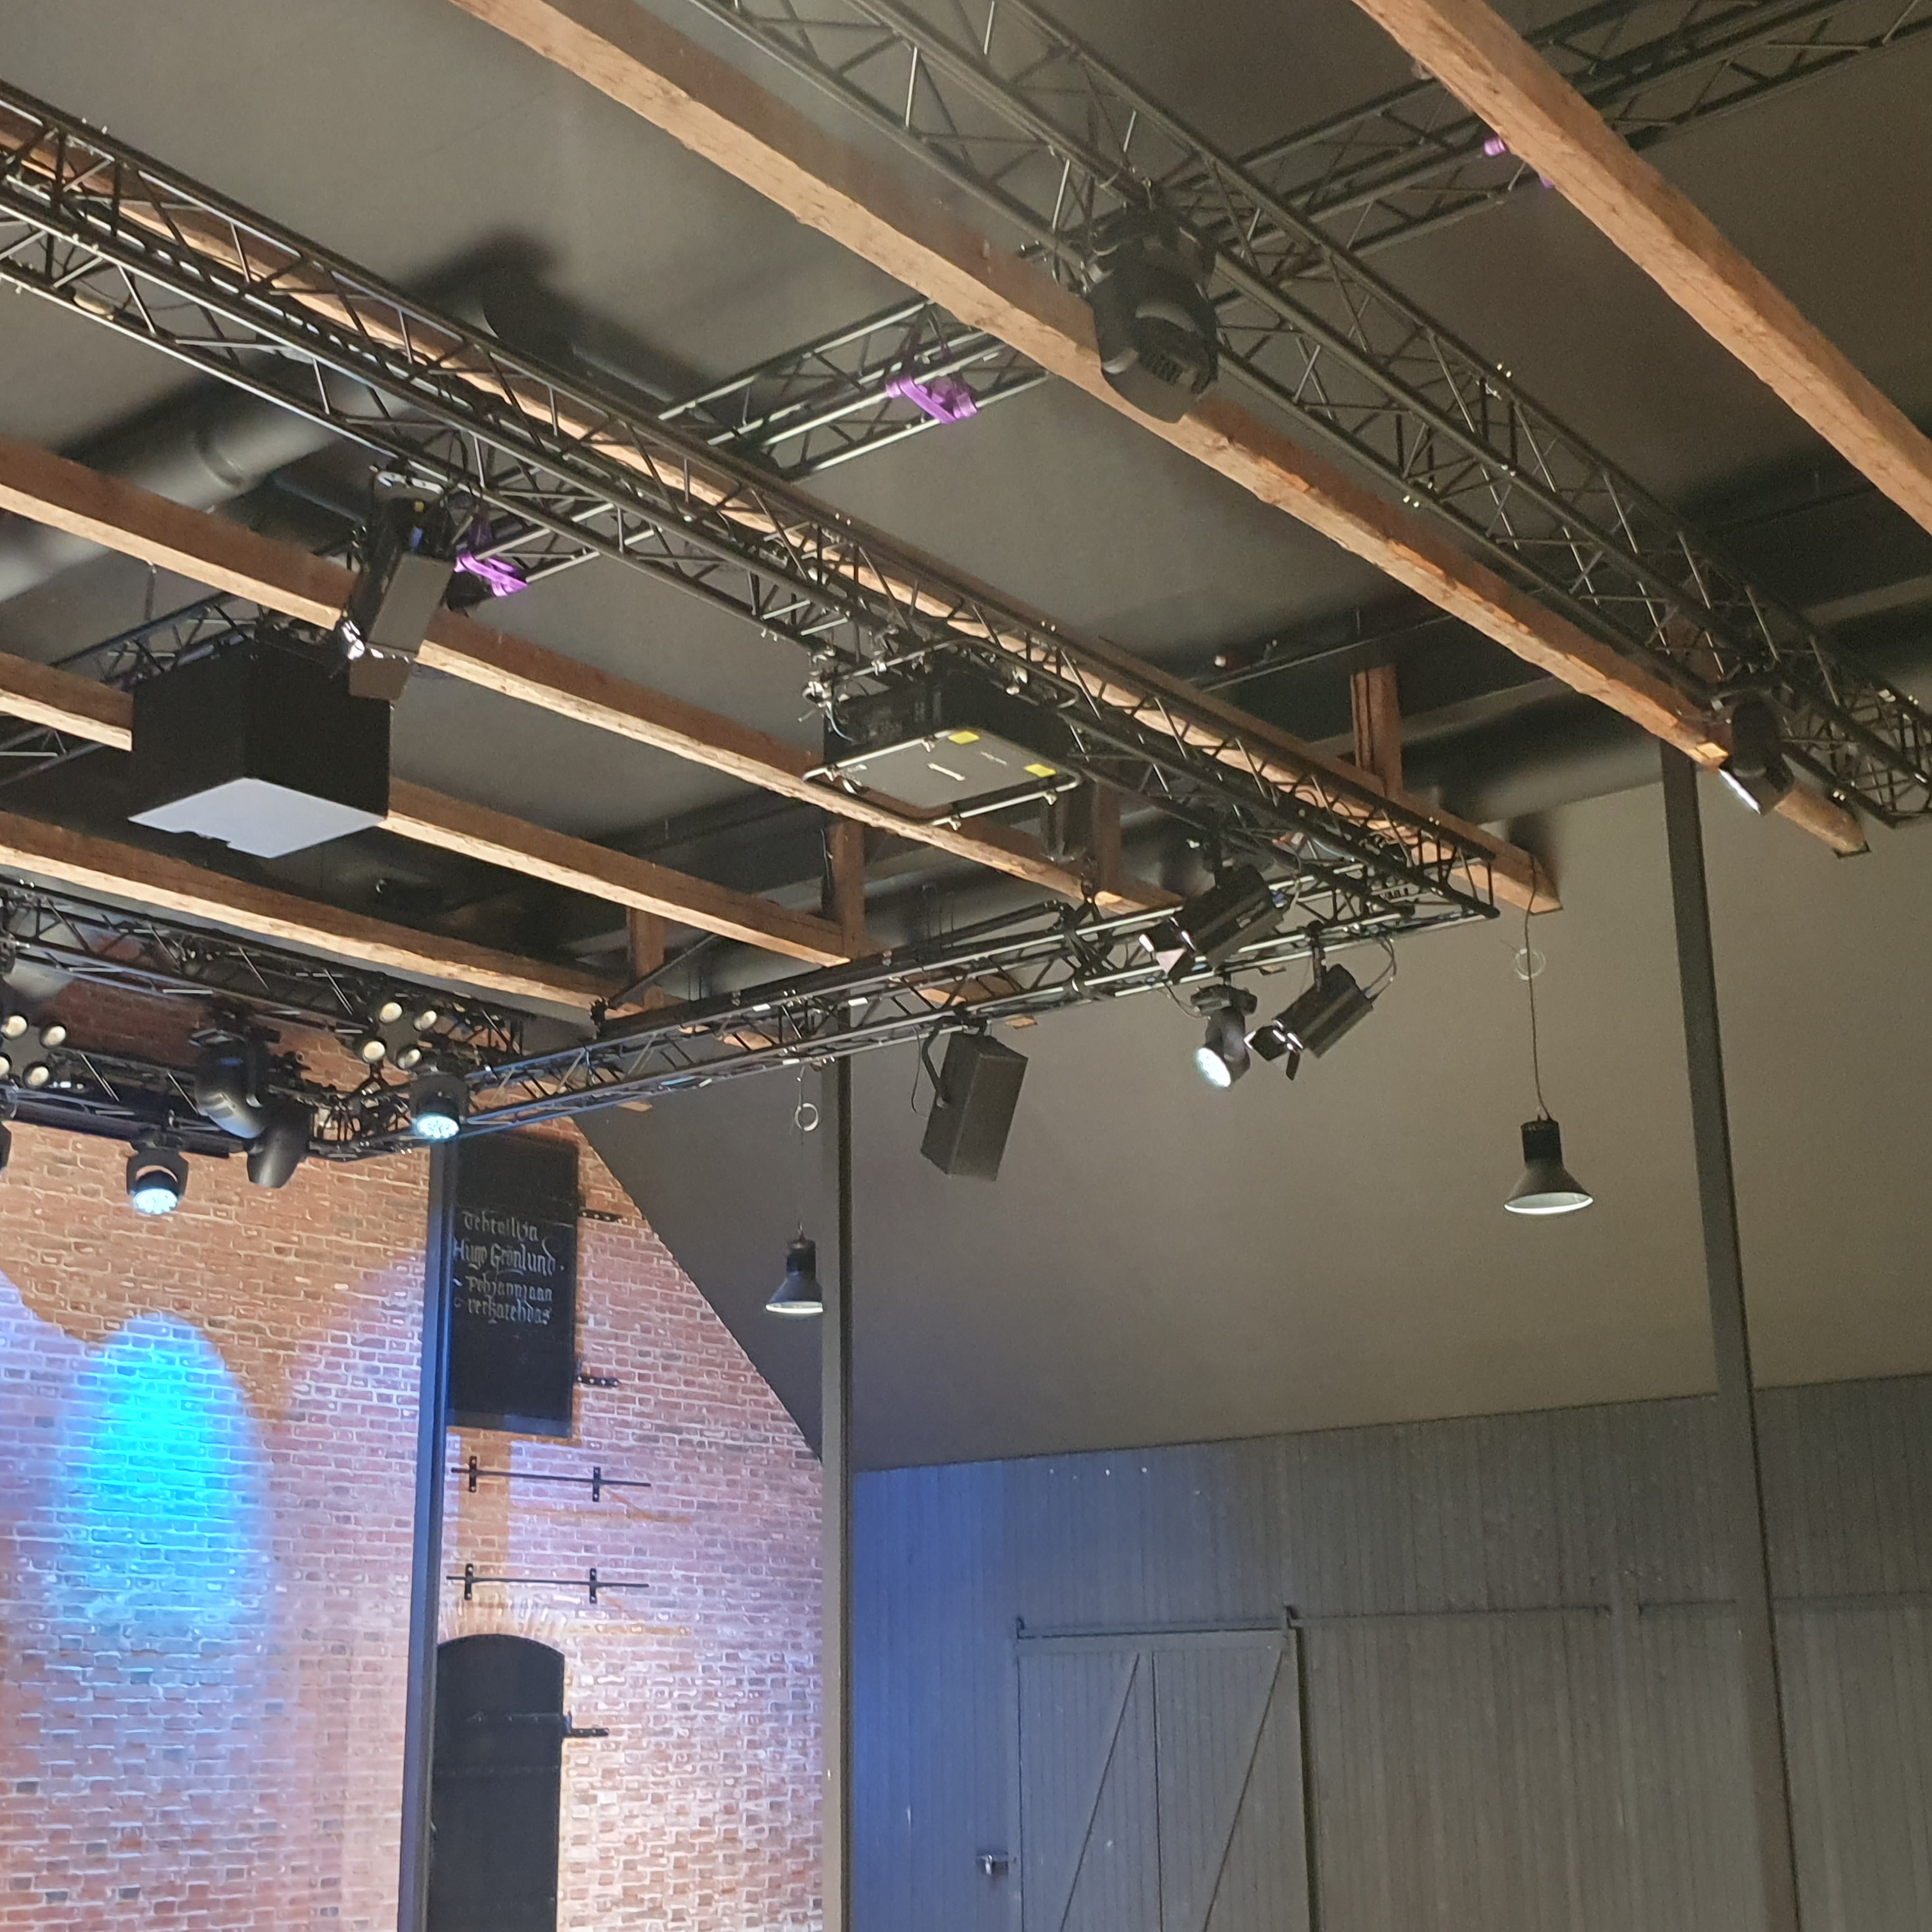 Light wood coloured beams against a black ceiling. In the background is a red brick wall and a black wooden wall